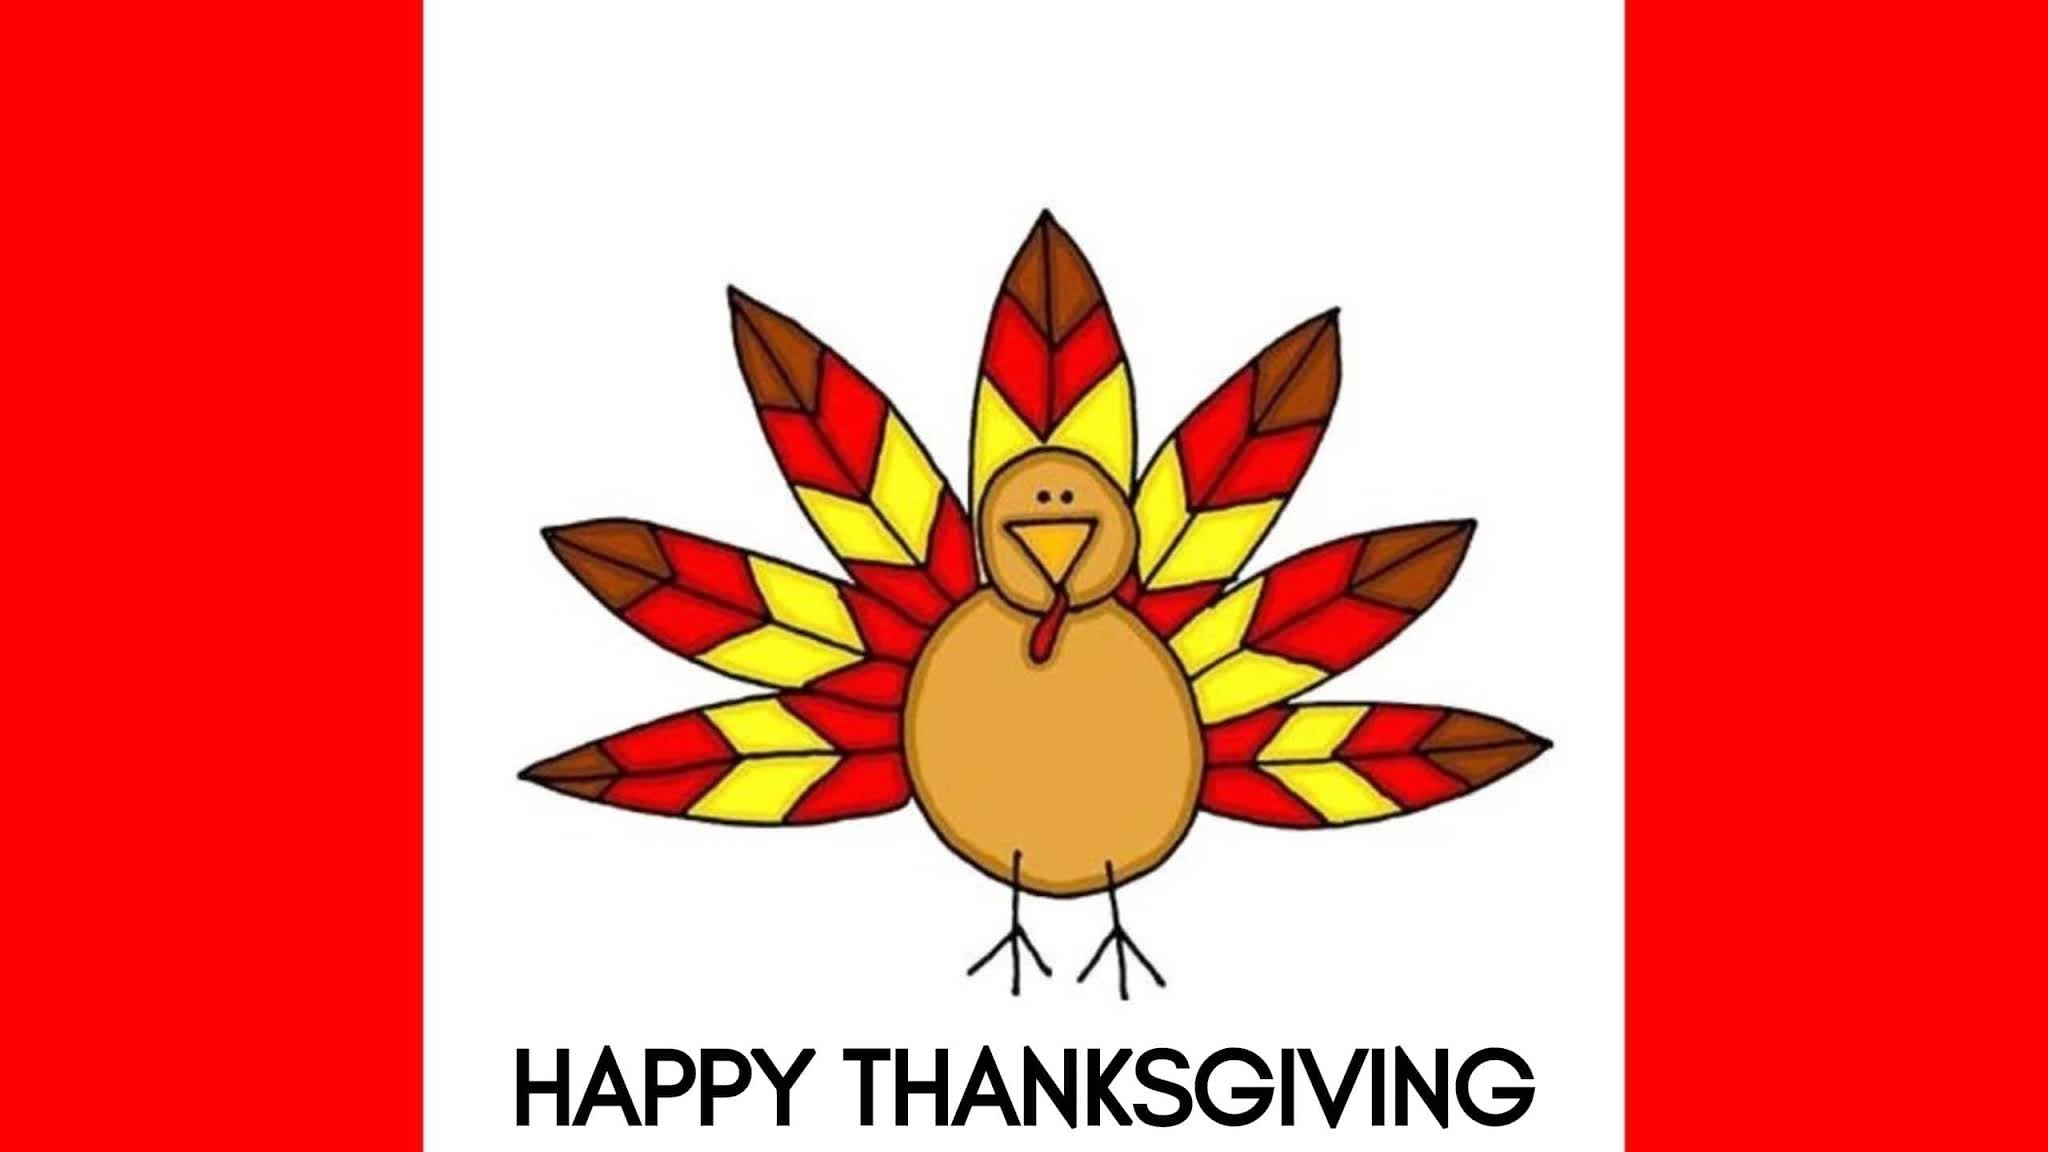 Thanksgiving [CANADA] Quotes, Wishes & Images, Poster